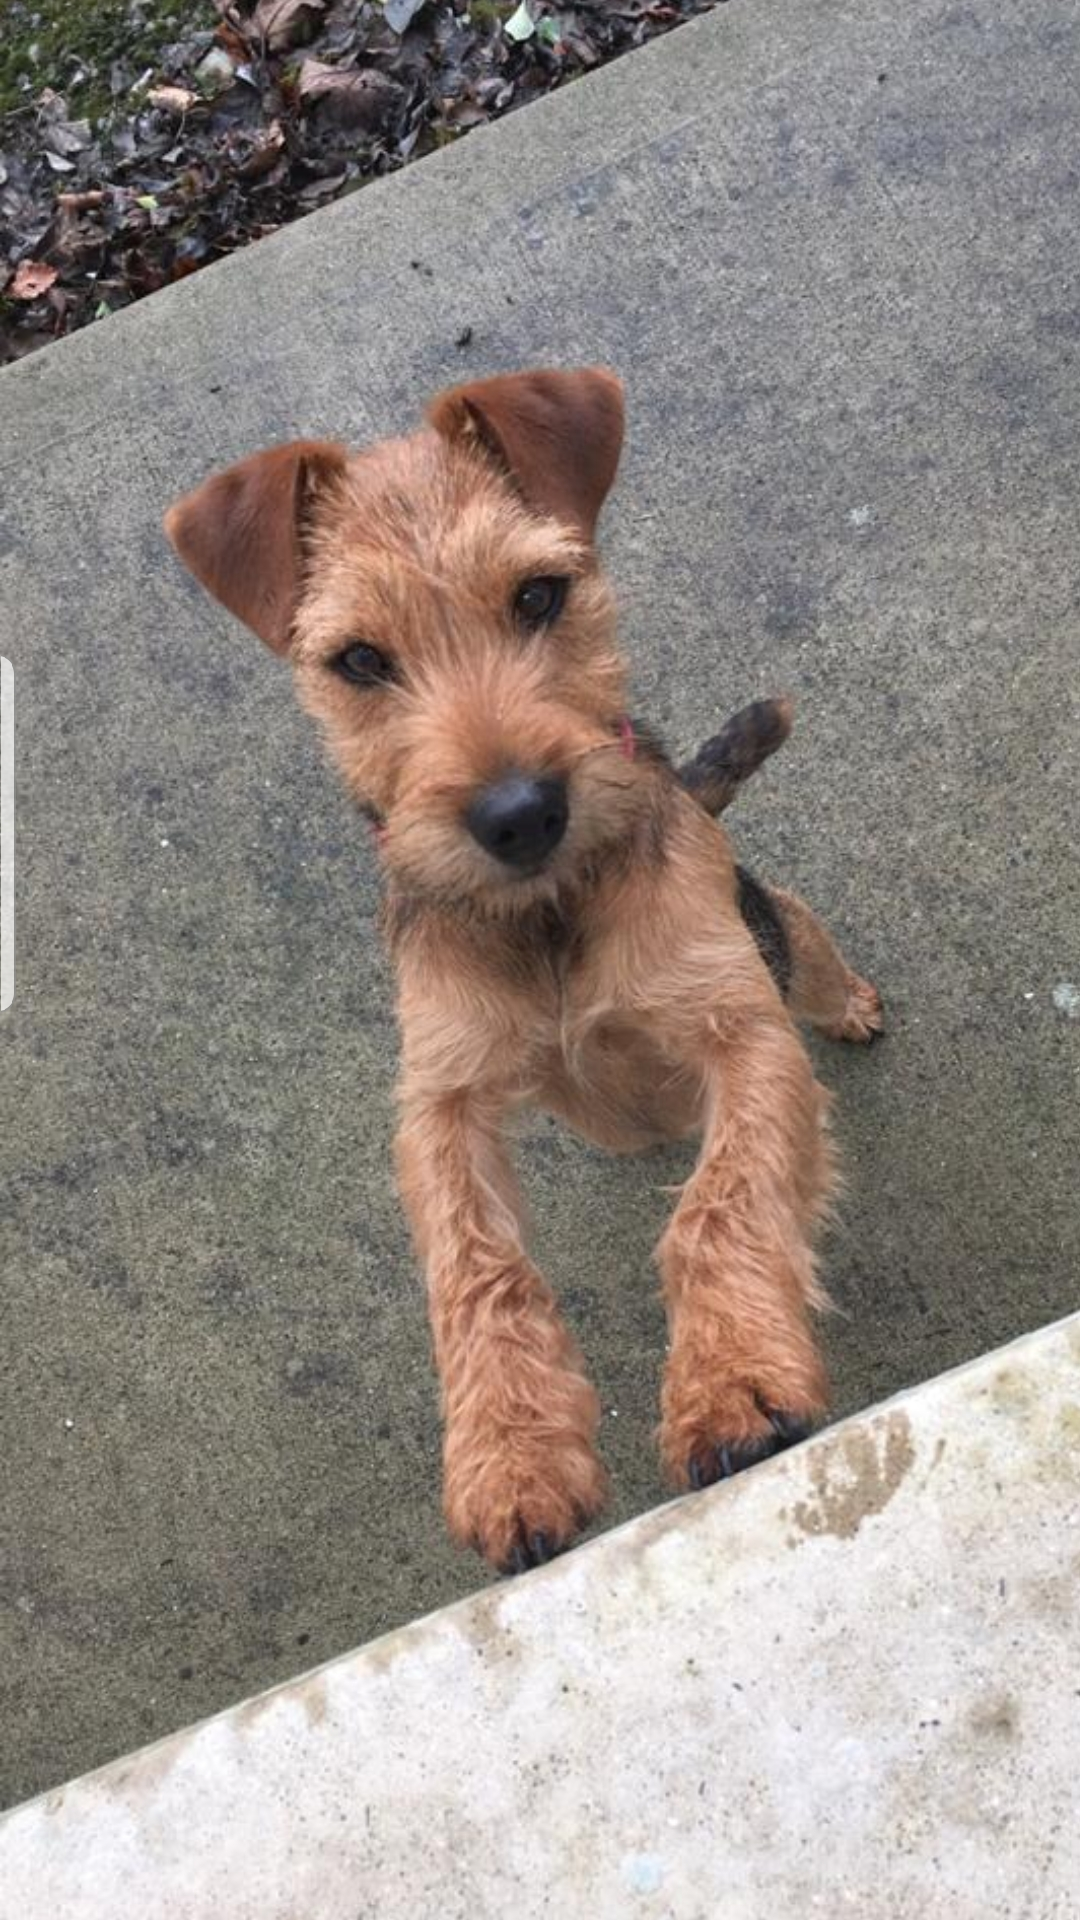 Lost: Brown/ Red Male Terrier